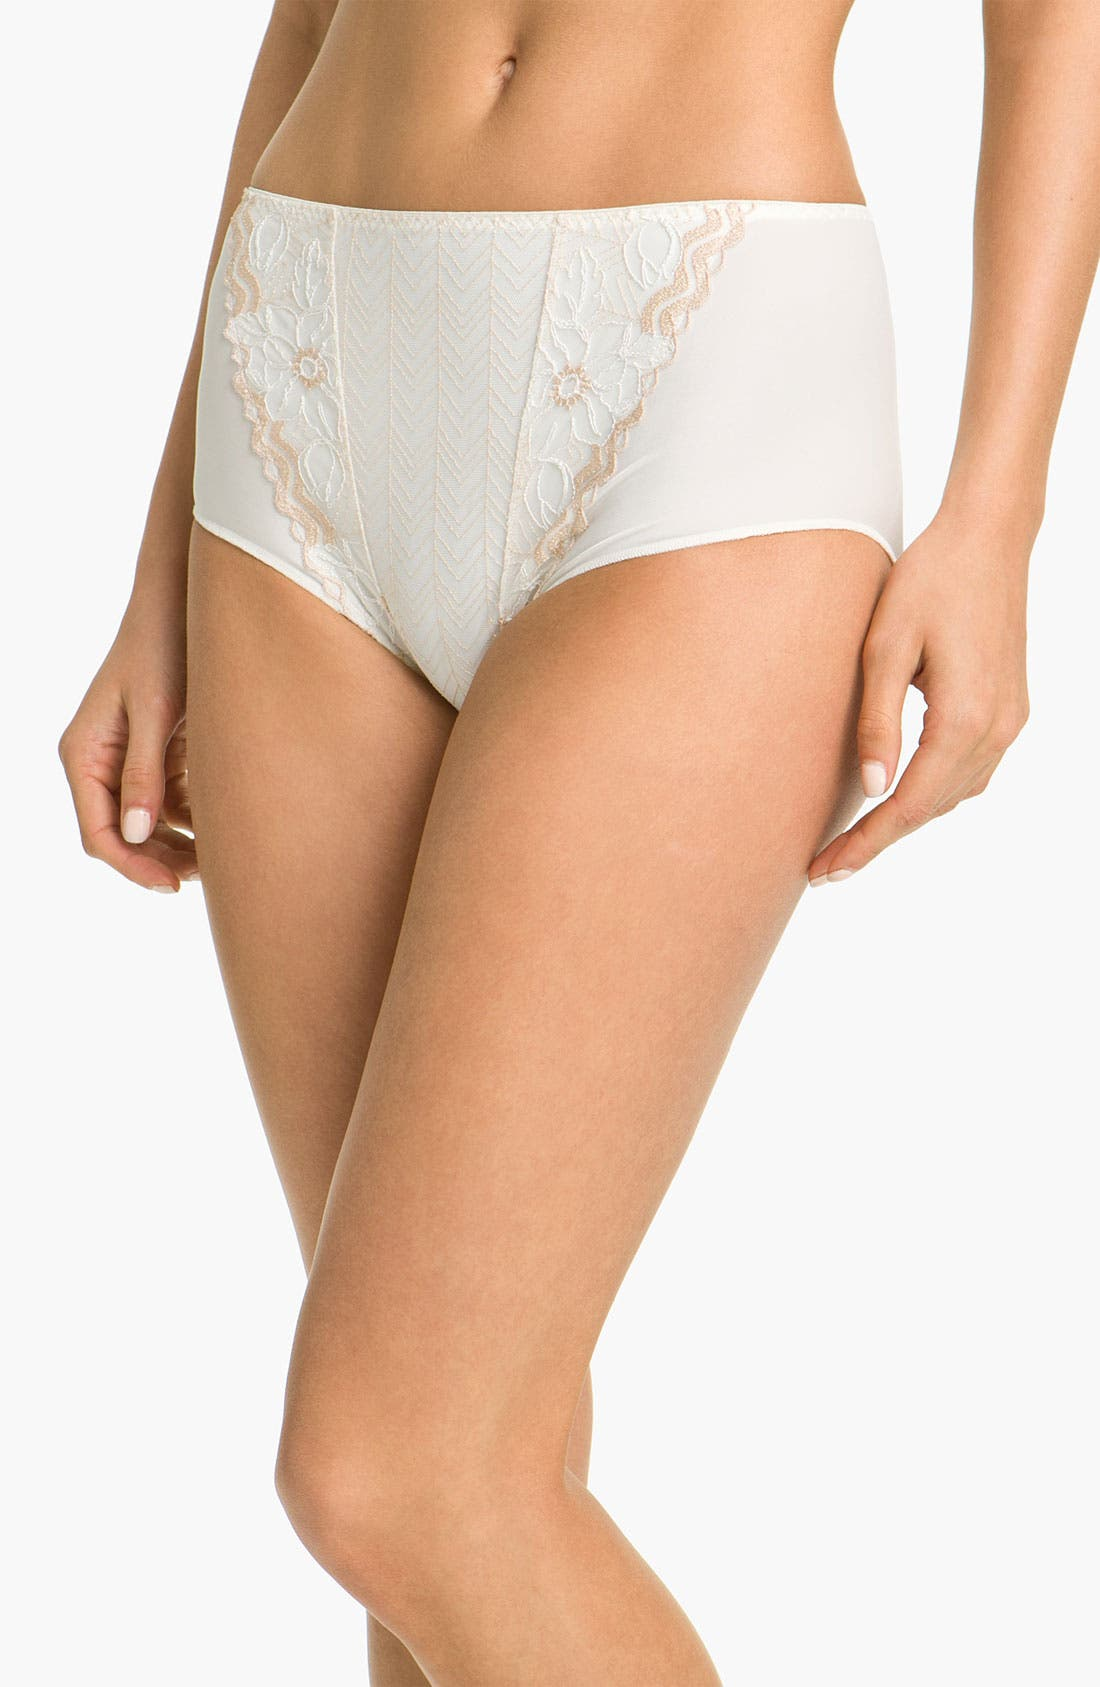 Main Image - Chantelle Intimates 'Saint Honoré' High Waist Briefs